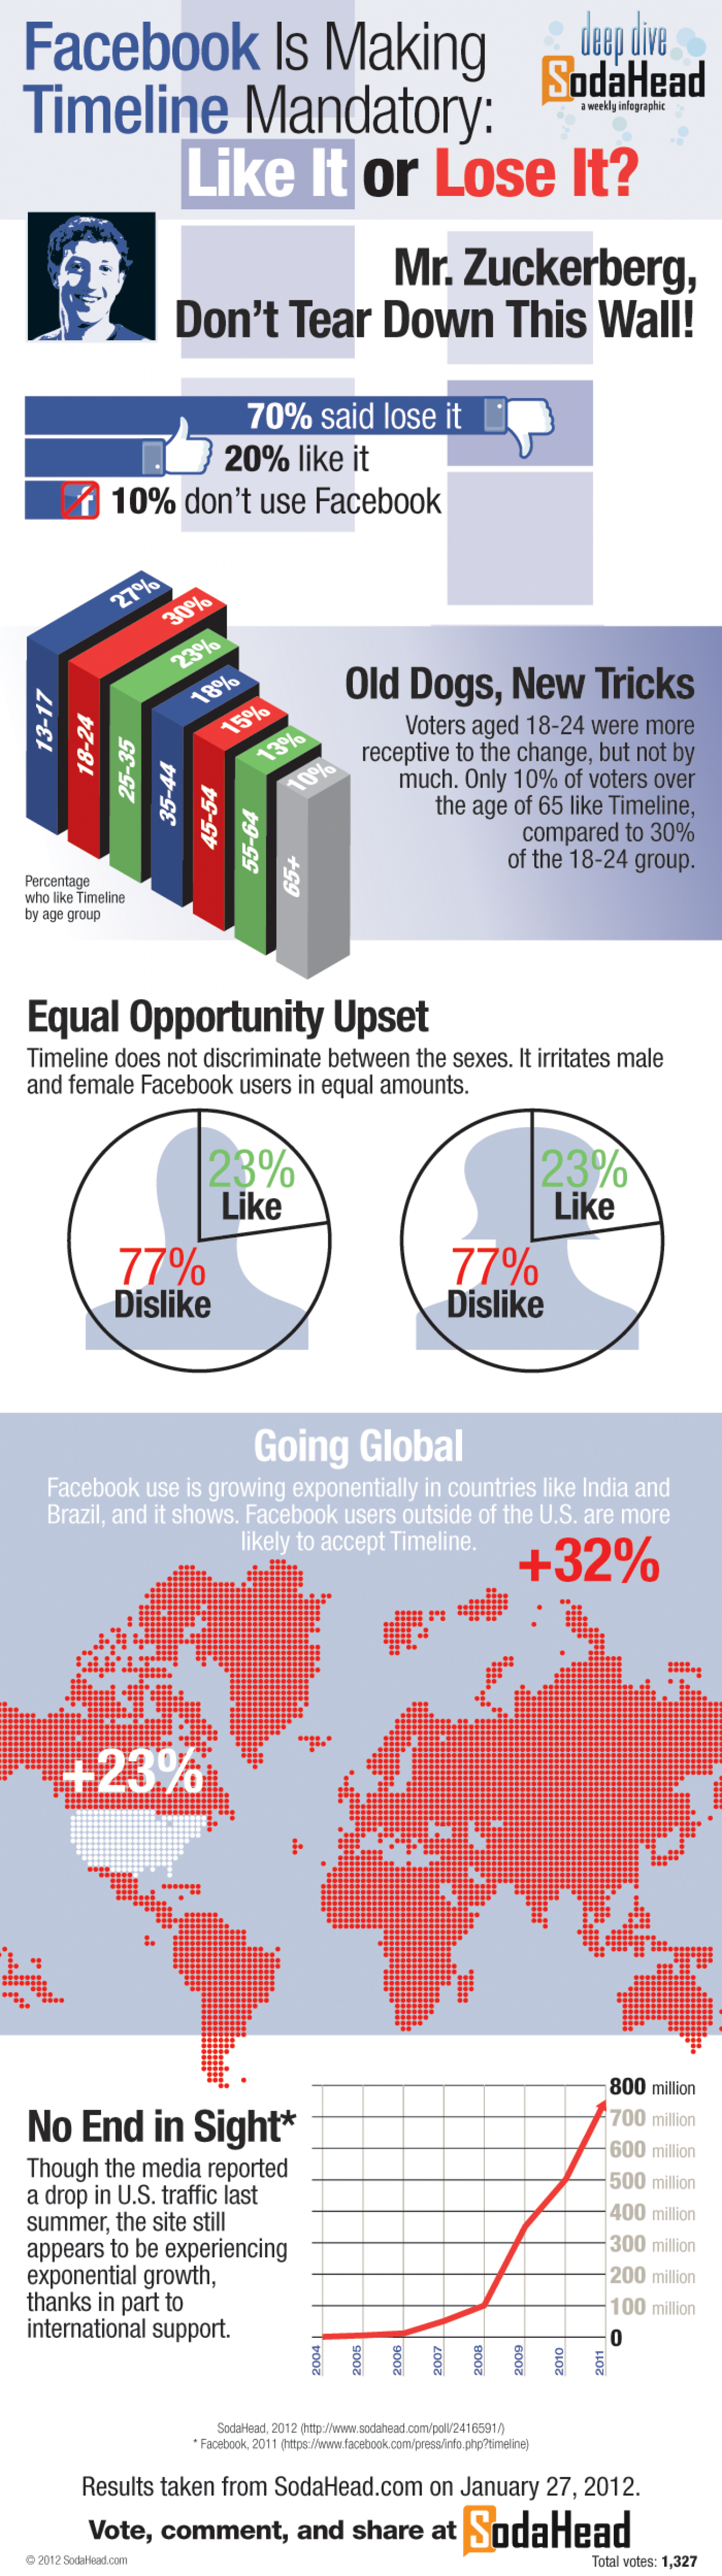 Facebook Timeline, Like It or Lose It Infographic